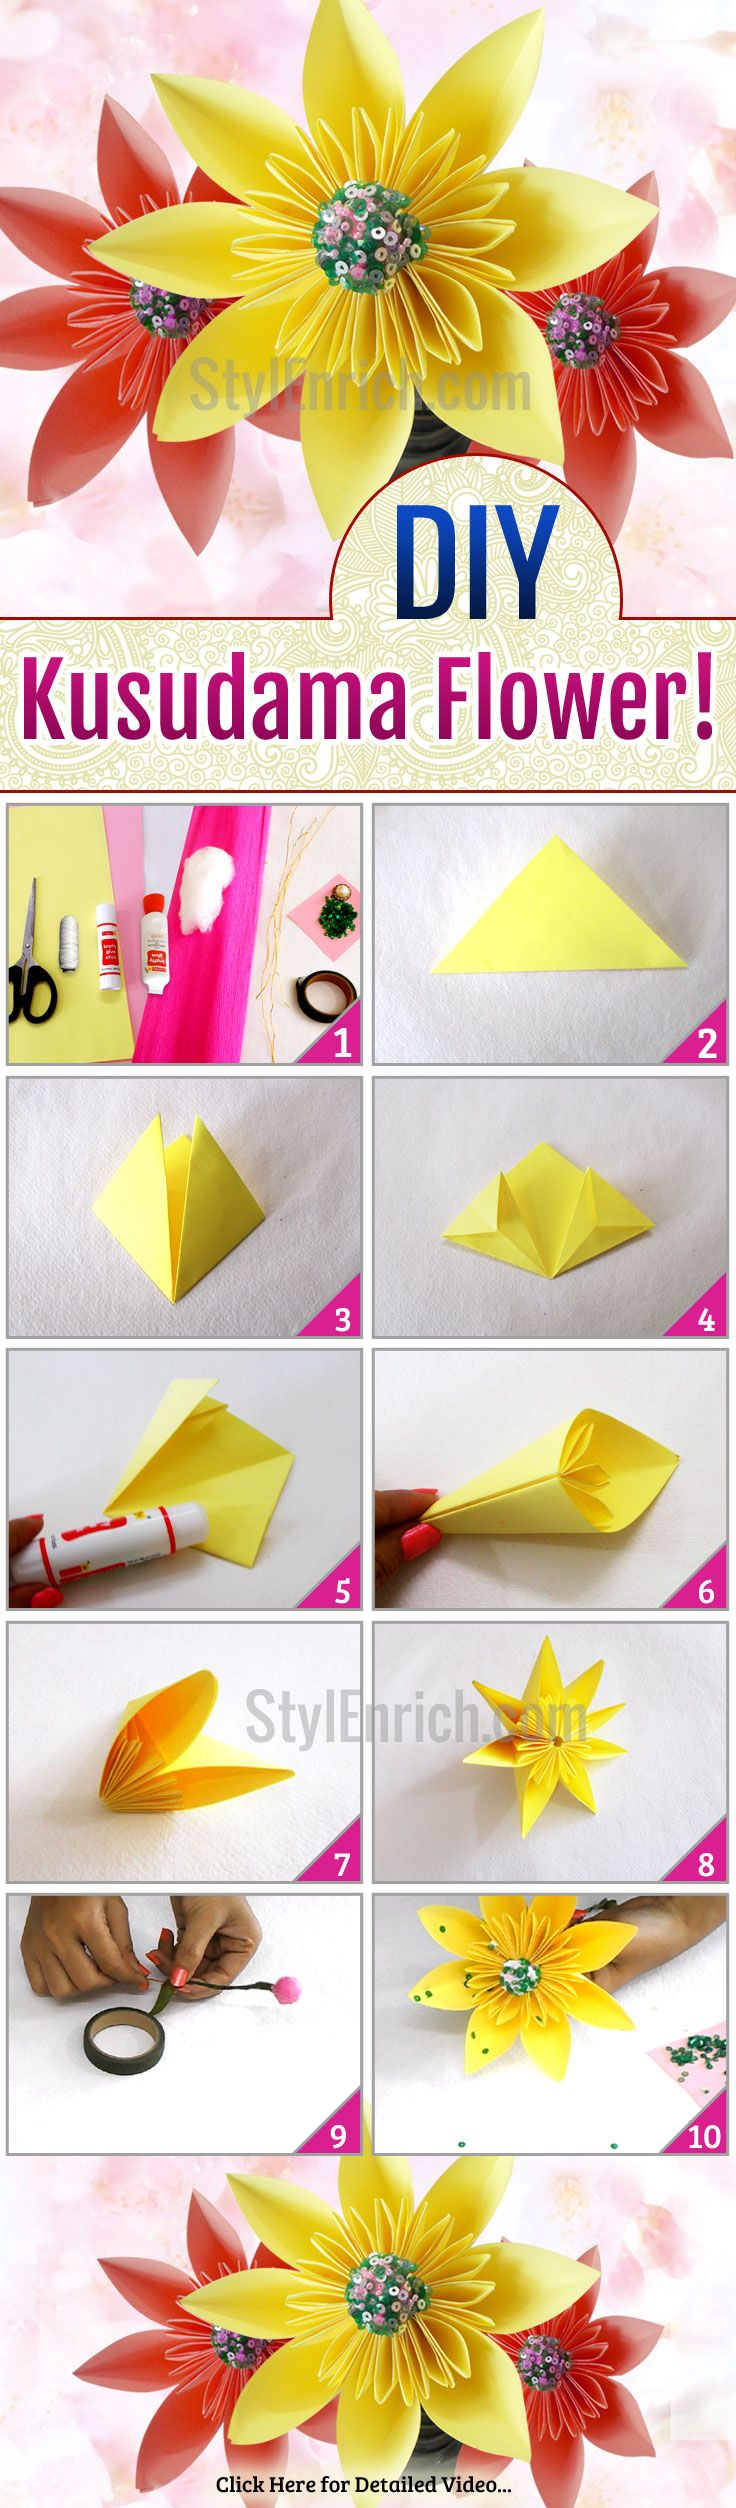 Want to know how to make beautiful super easy diypaperflowers kadudama origami flower want to know how to make beautiful super easy here are the step by step instructions to understand how to make easy paper flowers jeuxipadfo Gallery